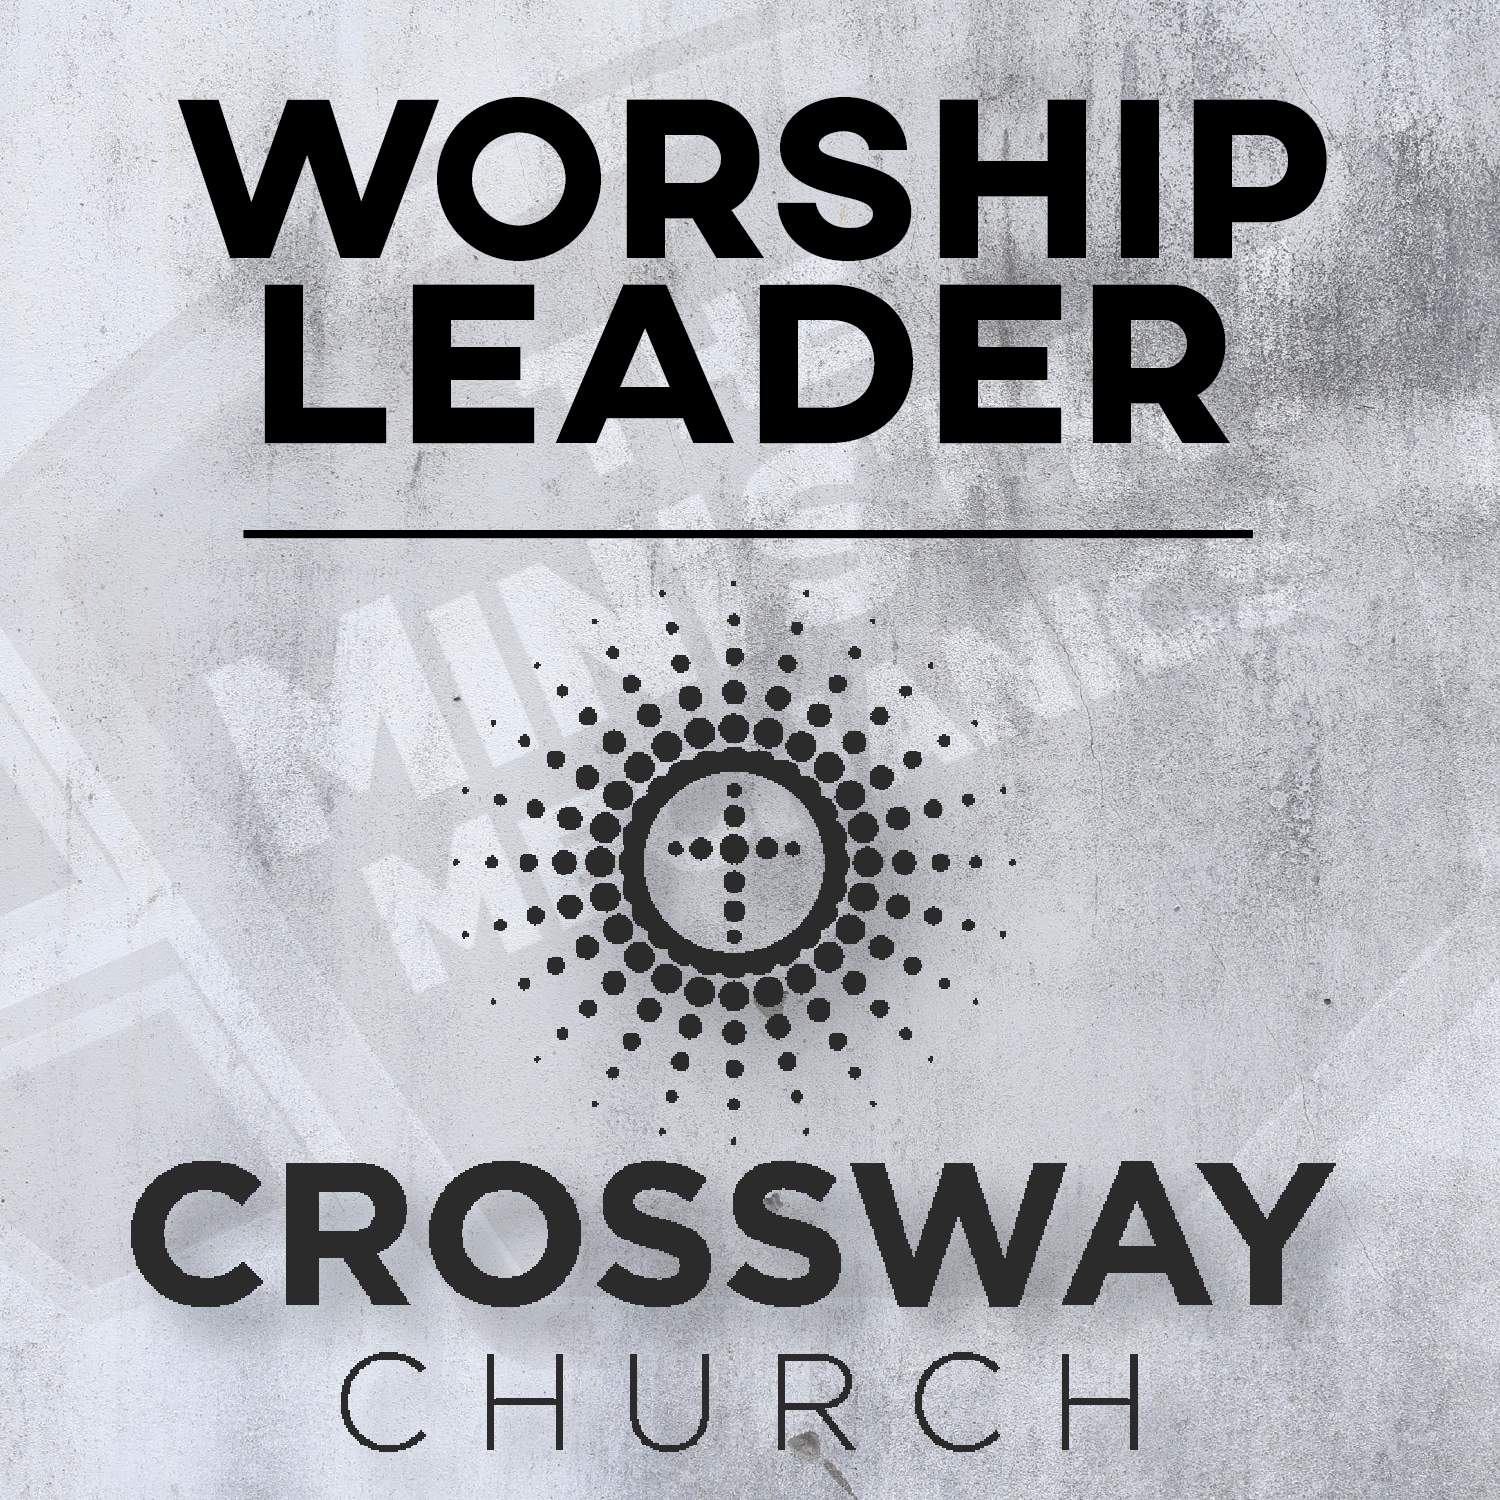 Crossway Worship Leader Graphic.png